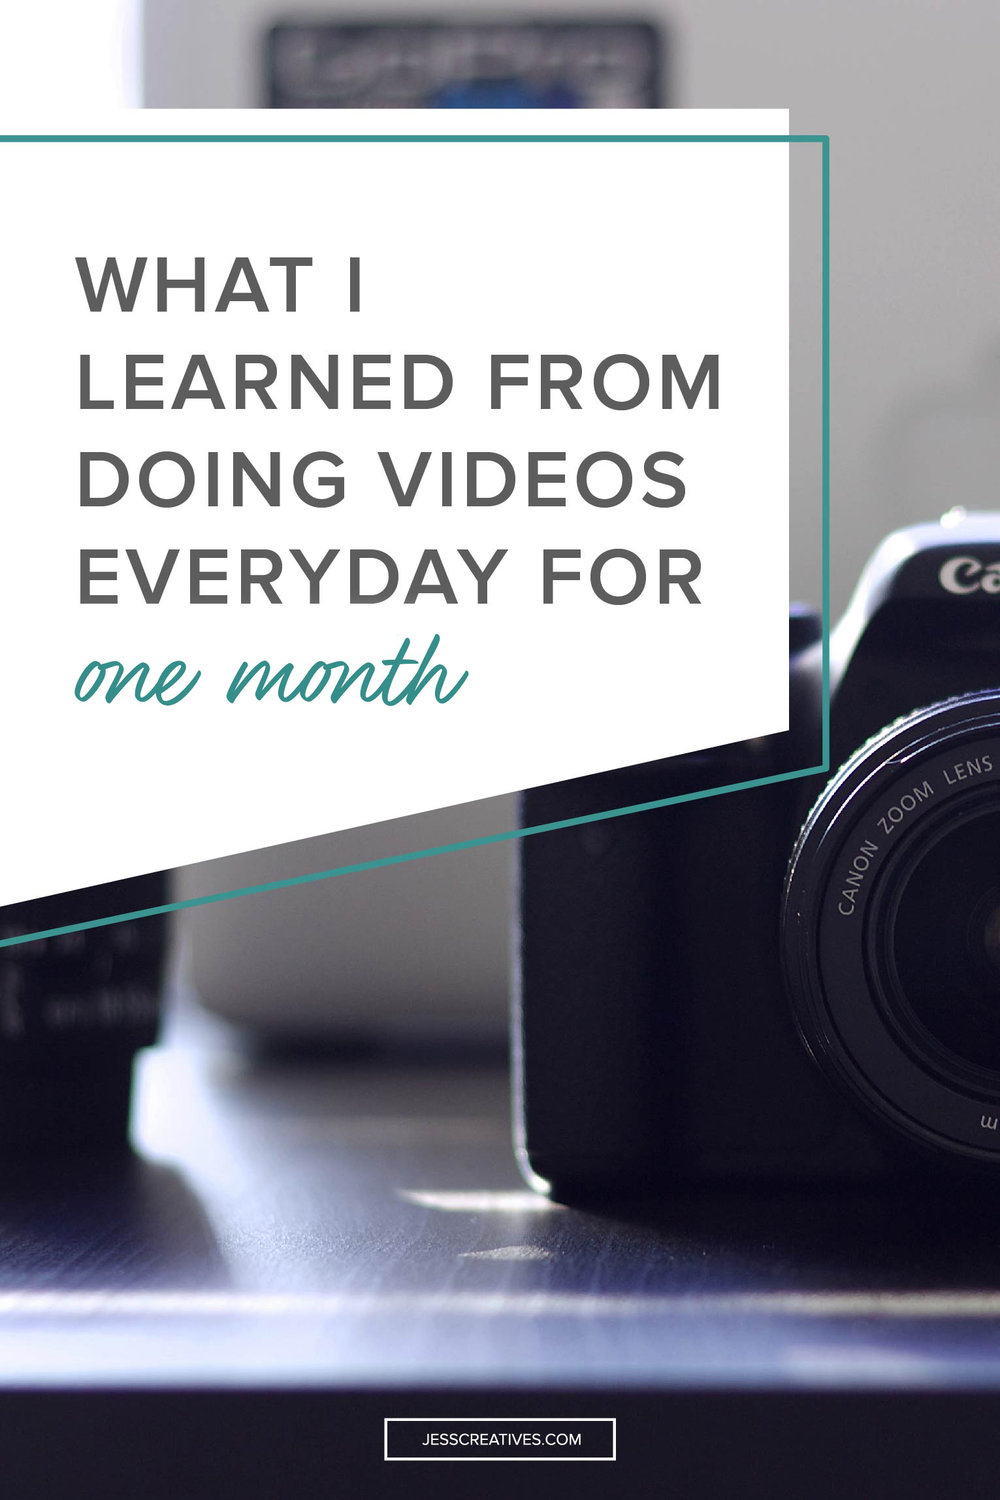 What I Learned from Doing Videos Everyday for One Month